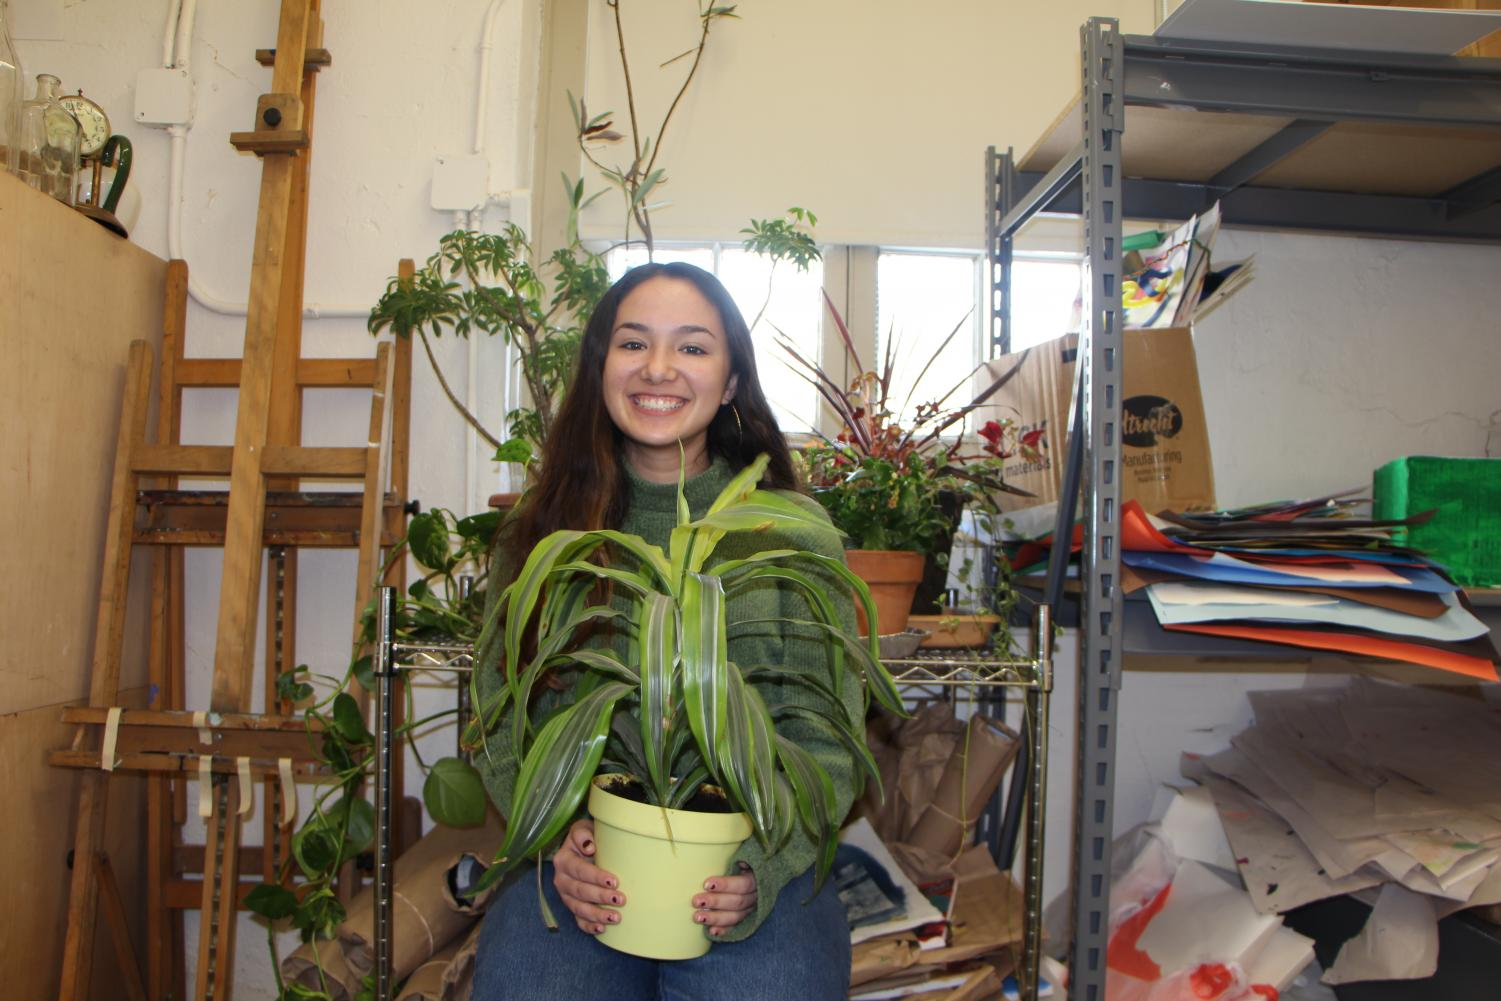 A portrait of Olivia Hurley holding a potted plant.